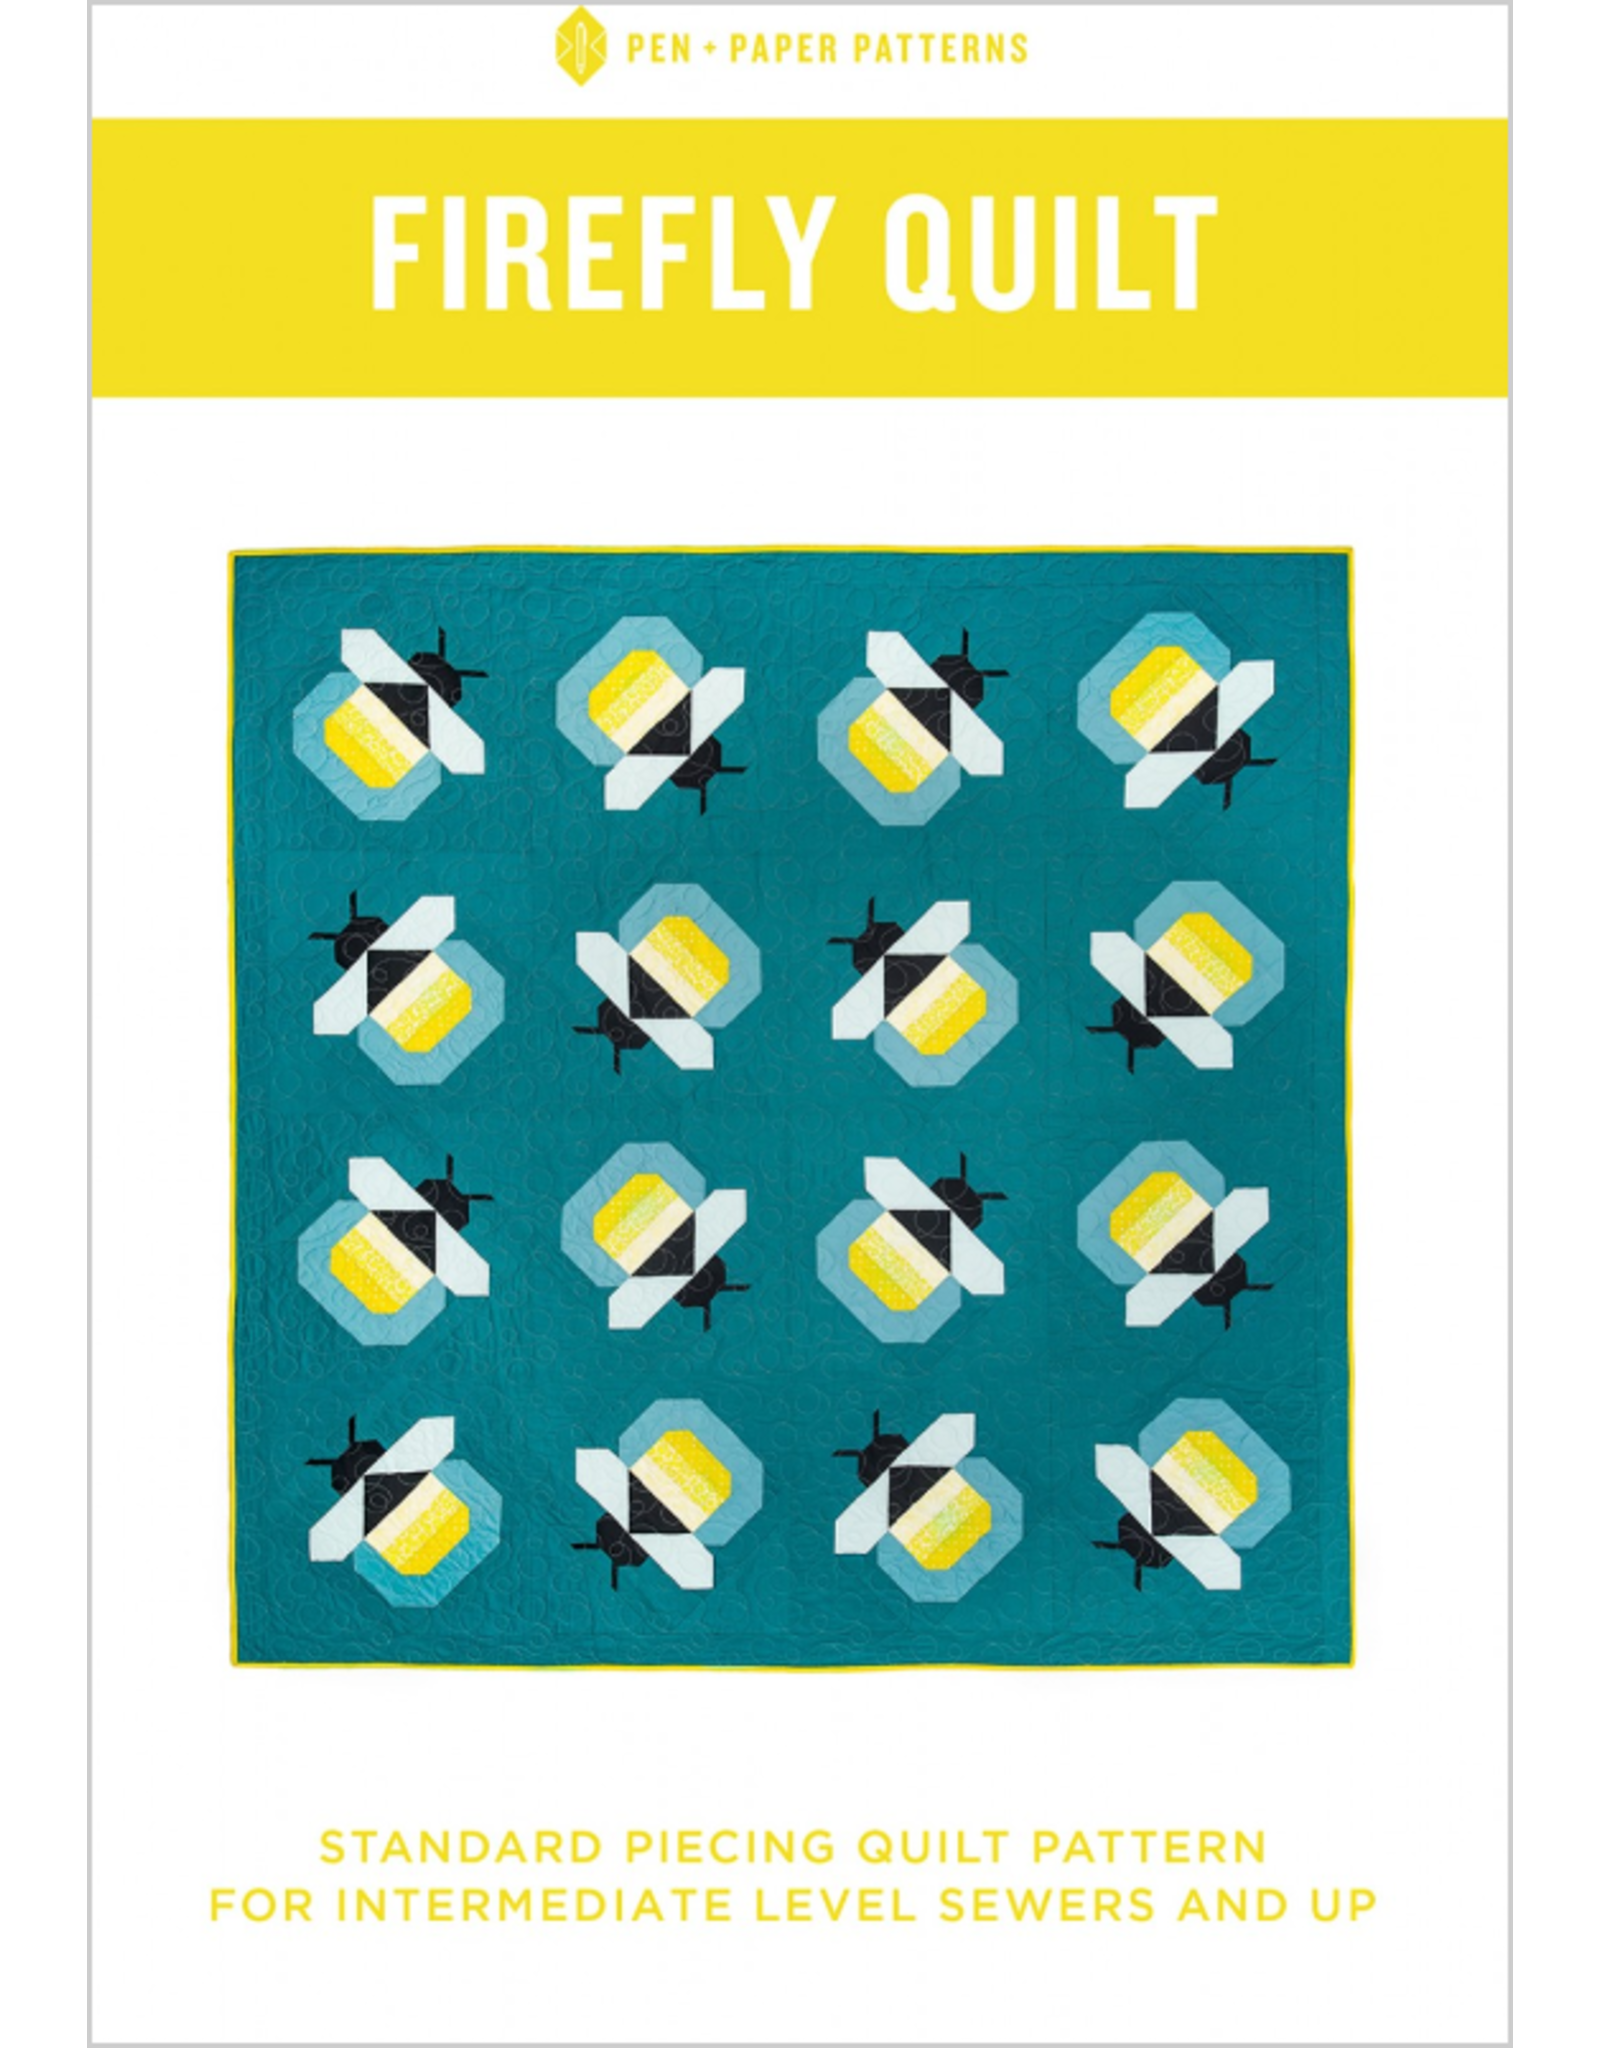 Pen and Paper Patterns Pen and Paper's Firefly Quilt Pattern